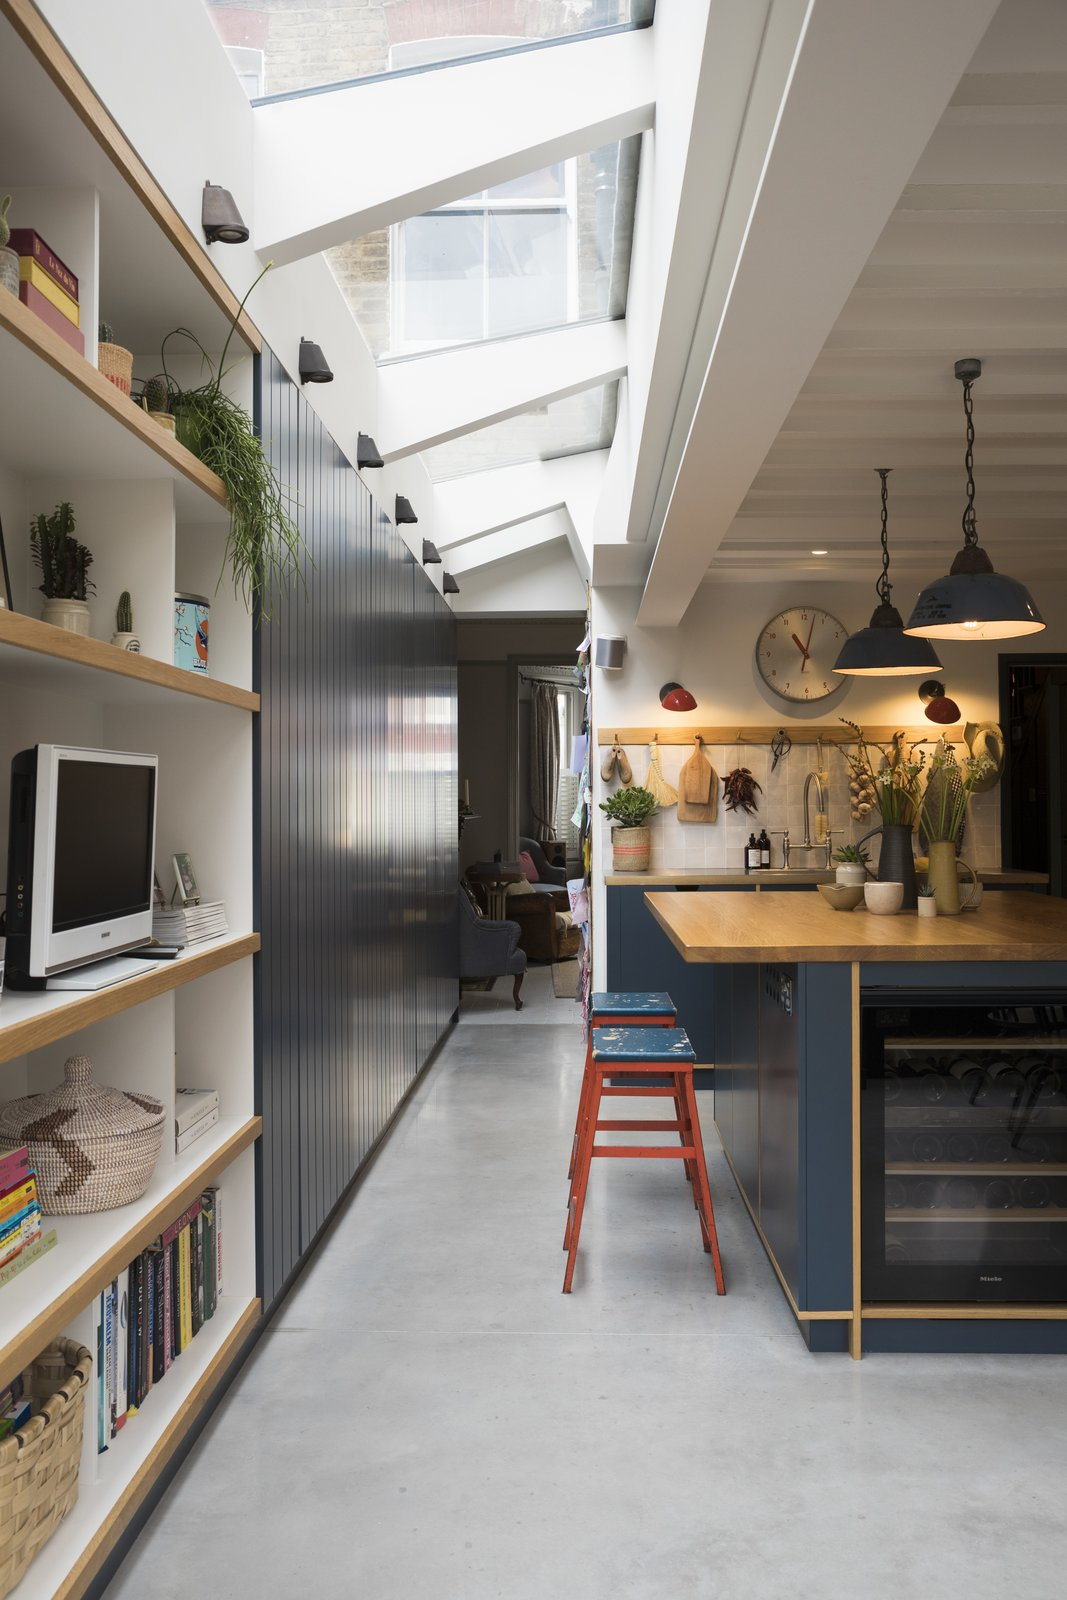 Kitchen, Concrete, Wine Cooler, Wood, Wall, Wood, Ceramic Tile, Drop In, and Pendant The expansive skylights are by Rooflight Architectural.    Best Kitchen Concrete Wood Wall Wine Cooler Photos from Before & After: A London Home Doubles as a Cheery Work Space